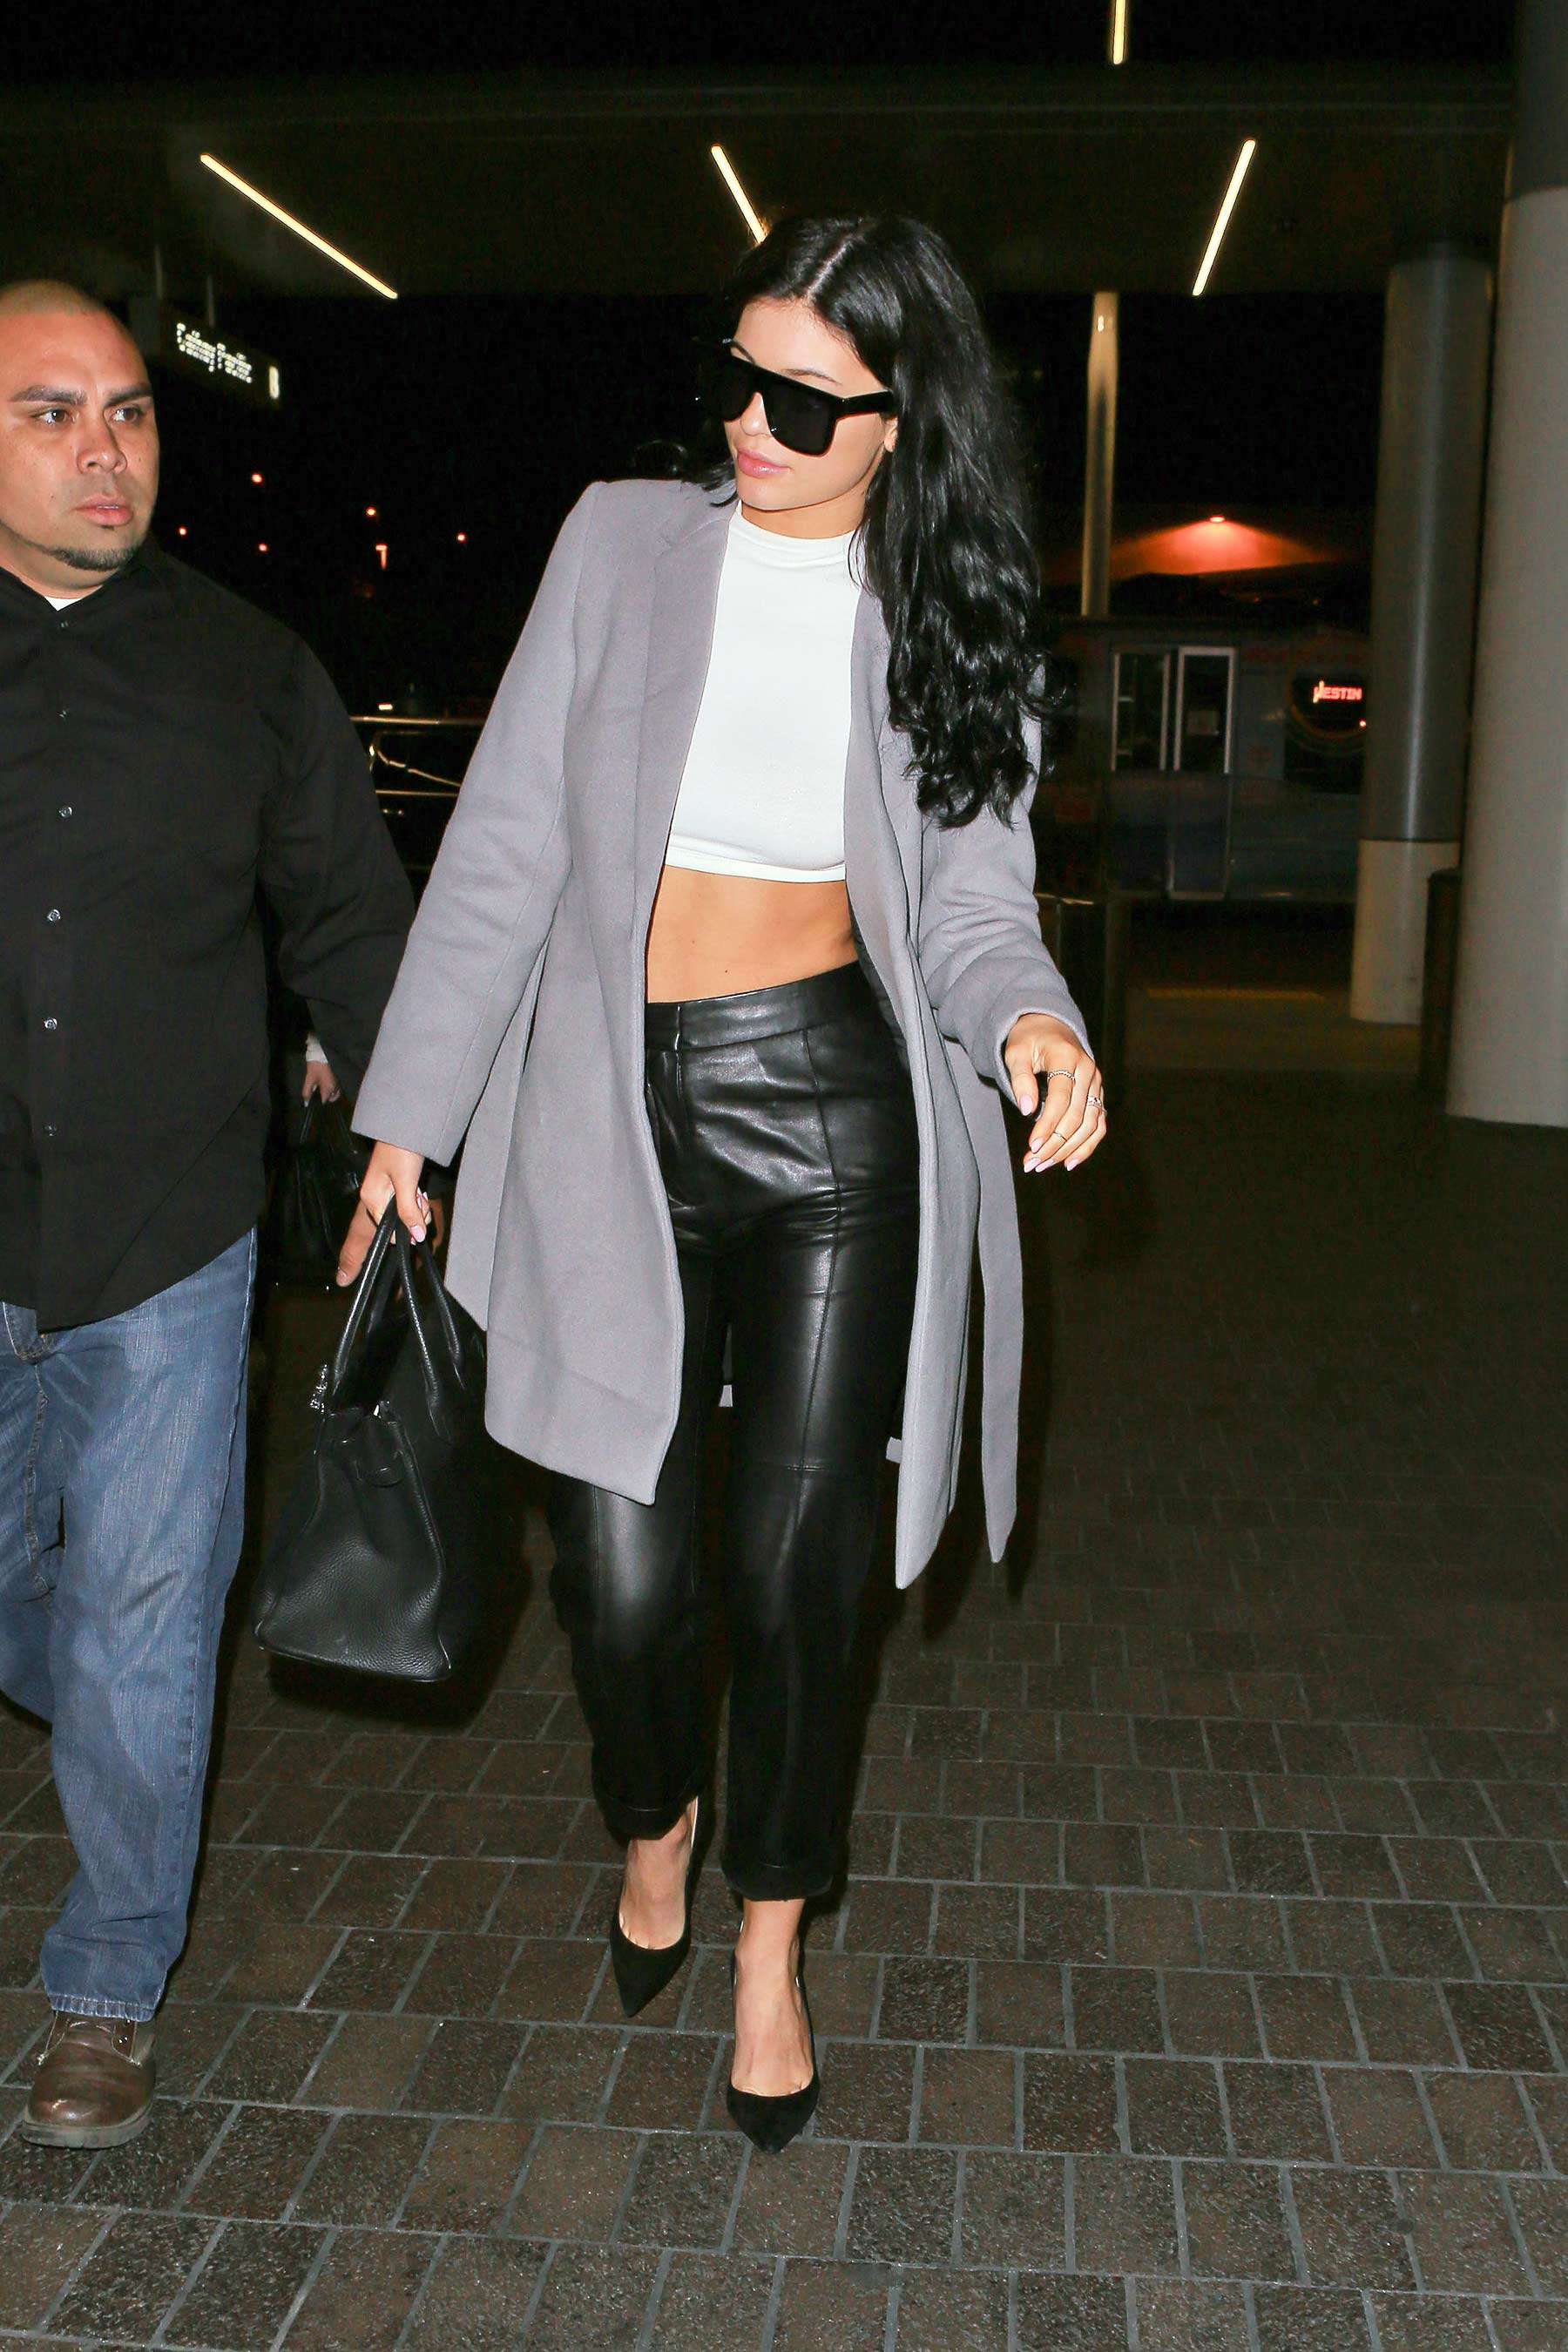 Kylie Jenner at LAX